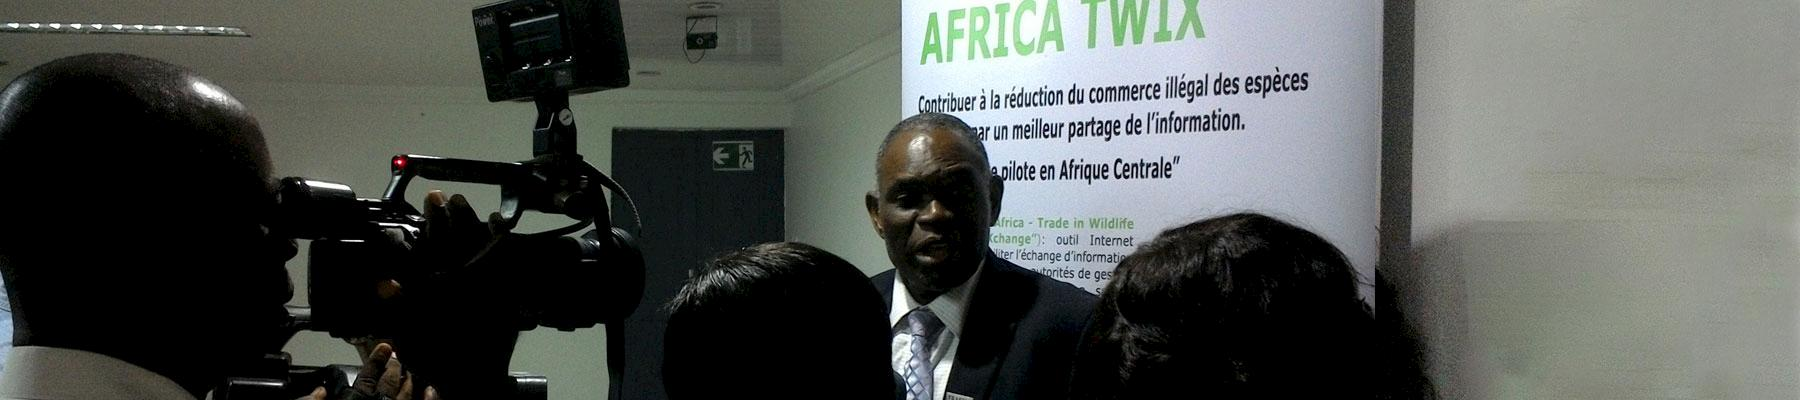 Paulinus interviewed at the launch of AFRICA-TWIX